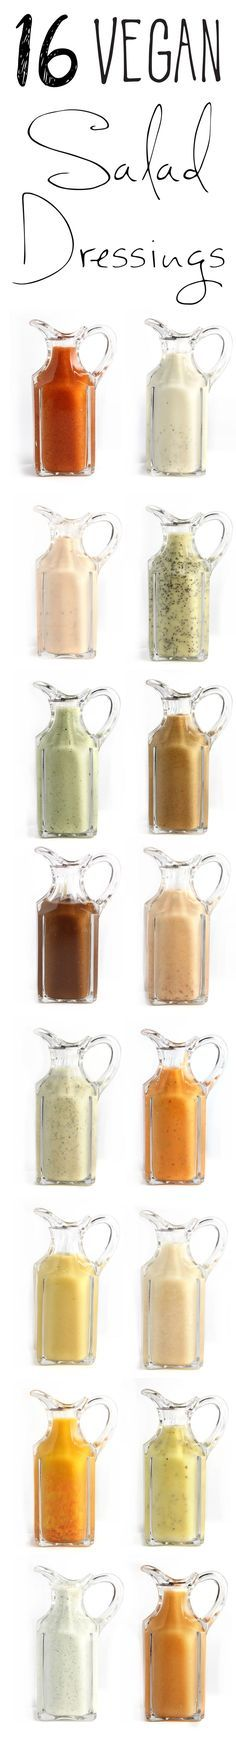 16 Vegan Salad Dressings!! All the classics made vegan, plus a few more great ideas. #itdoesnttastelikechicken